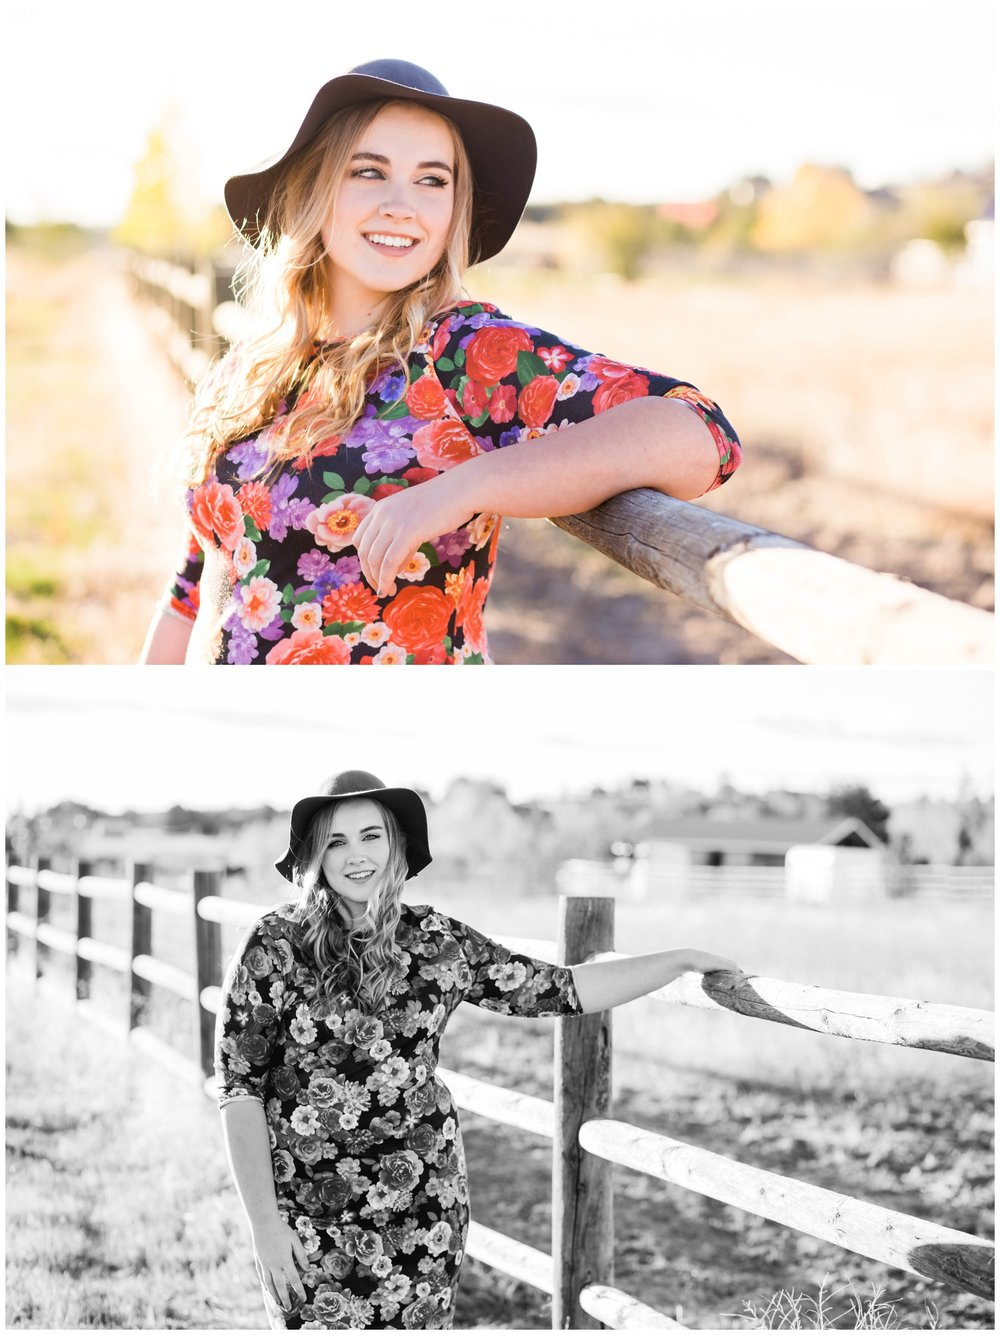 Country senior session in front of barn and fence with Oregon photographer